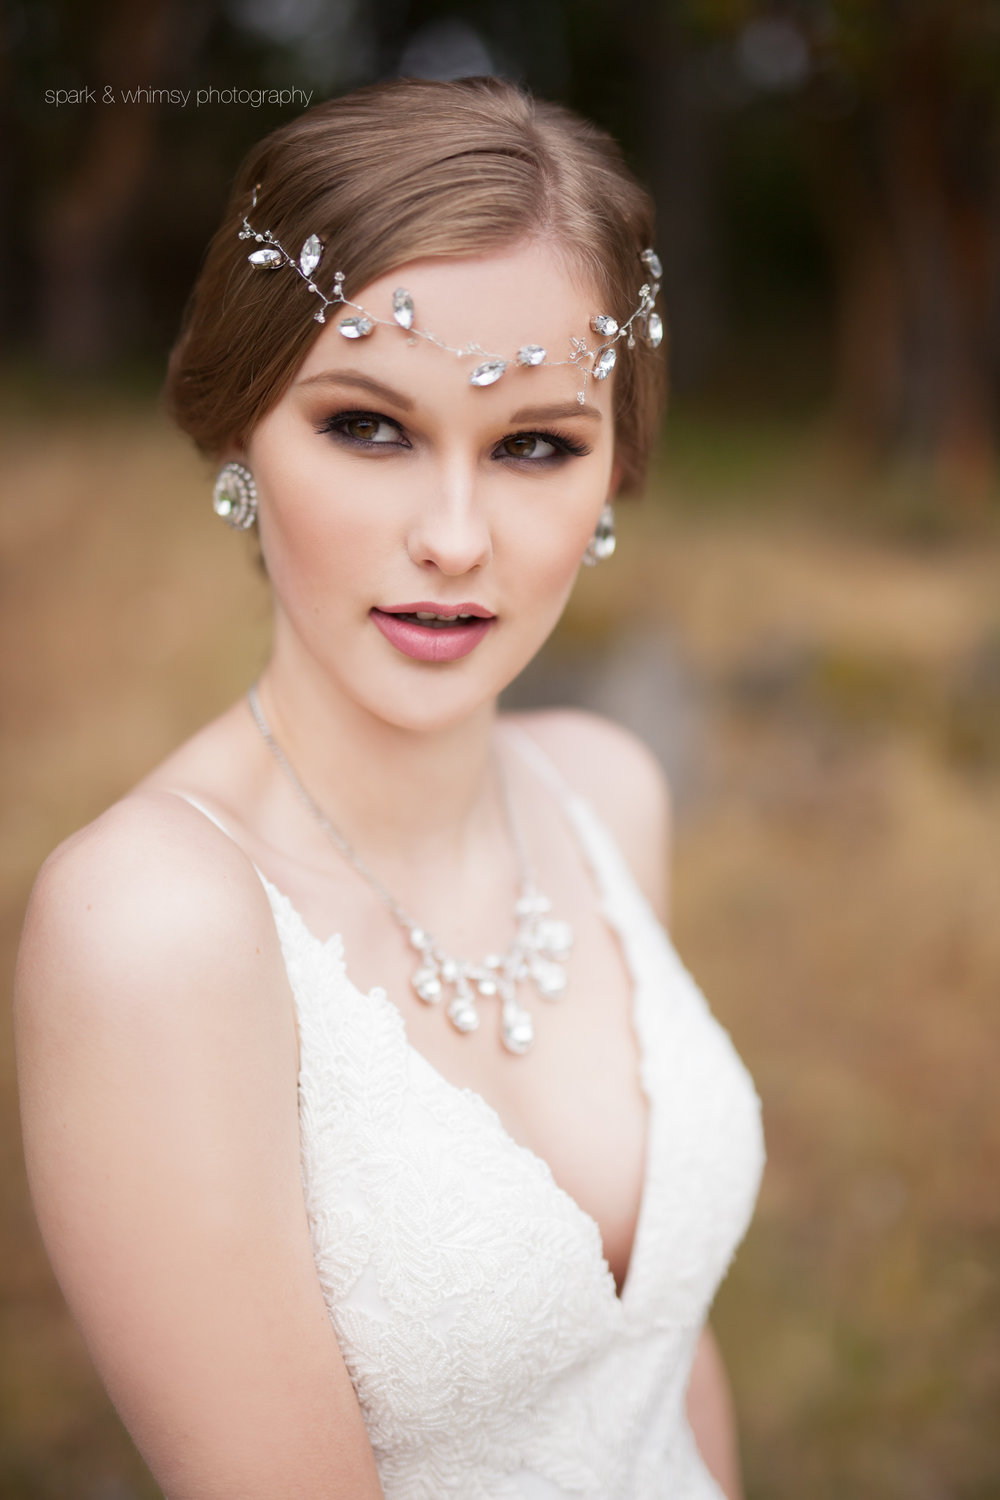 wedding shoot at Olympic View Golf Club with Sharon Rai Hair and Makeup Artistry | Wedding Photography Victoria BC